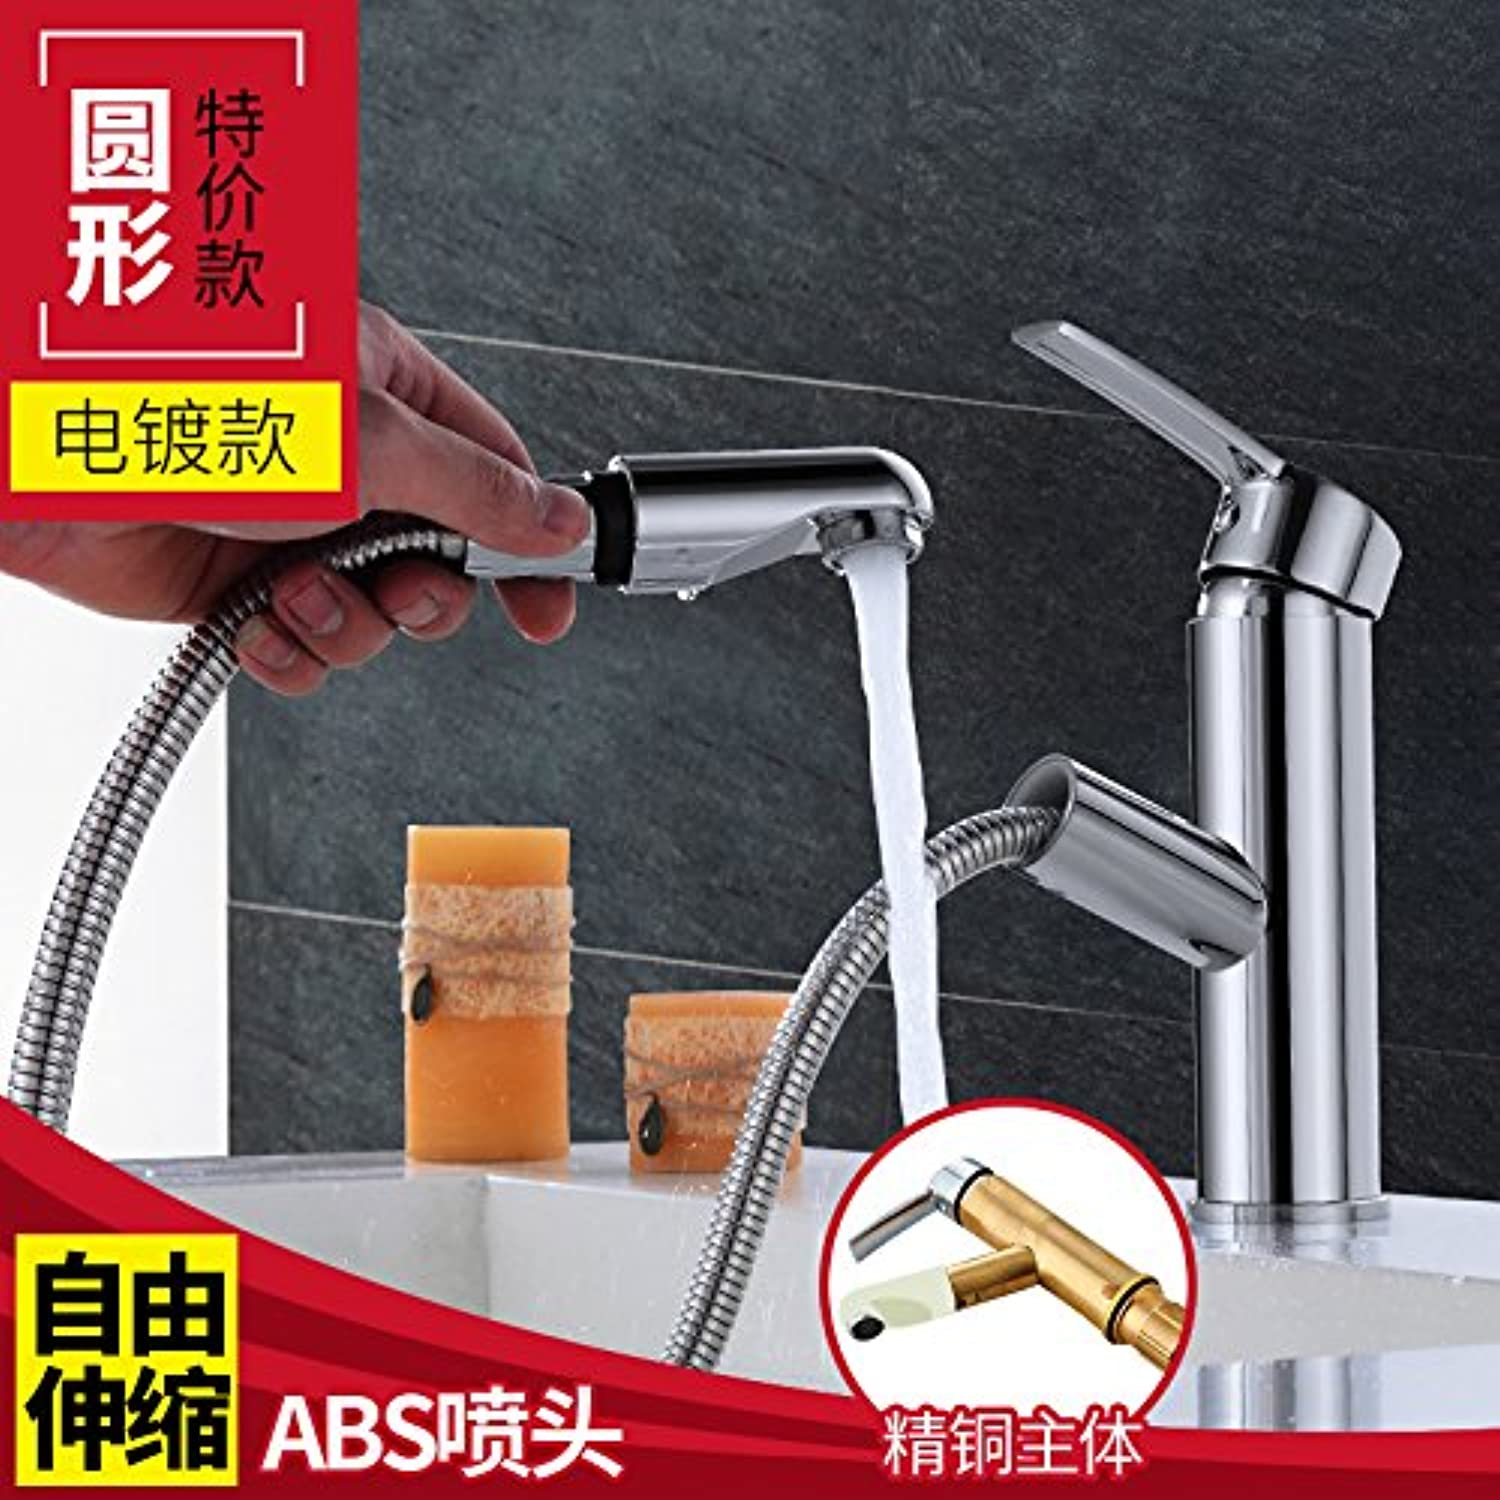 Hlluya Professional Sink Mixer Tap Kitchen Faucet All copper pull faucet cold and hot tub on hand wash basins single hole basin mixer with high scalability, of all copper body -ABS Sprinklers